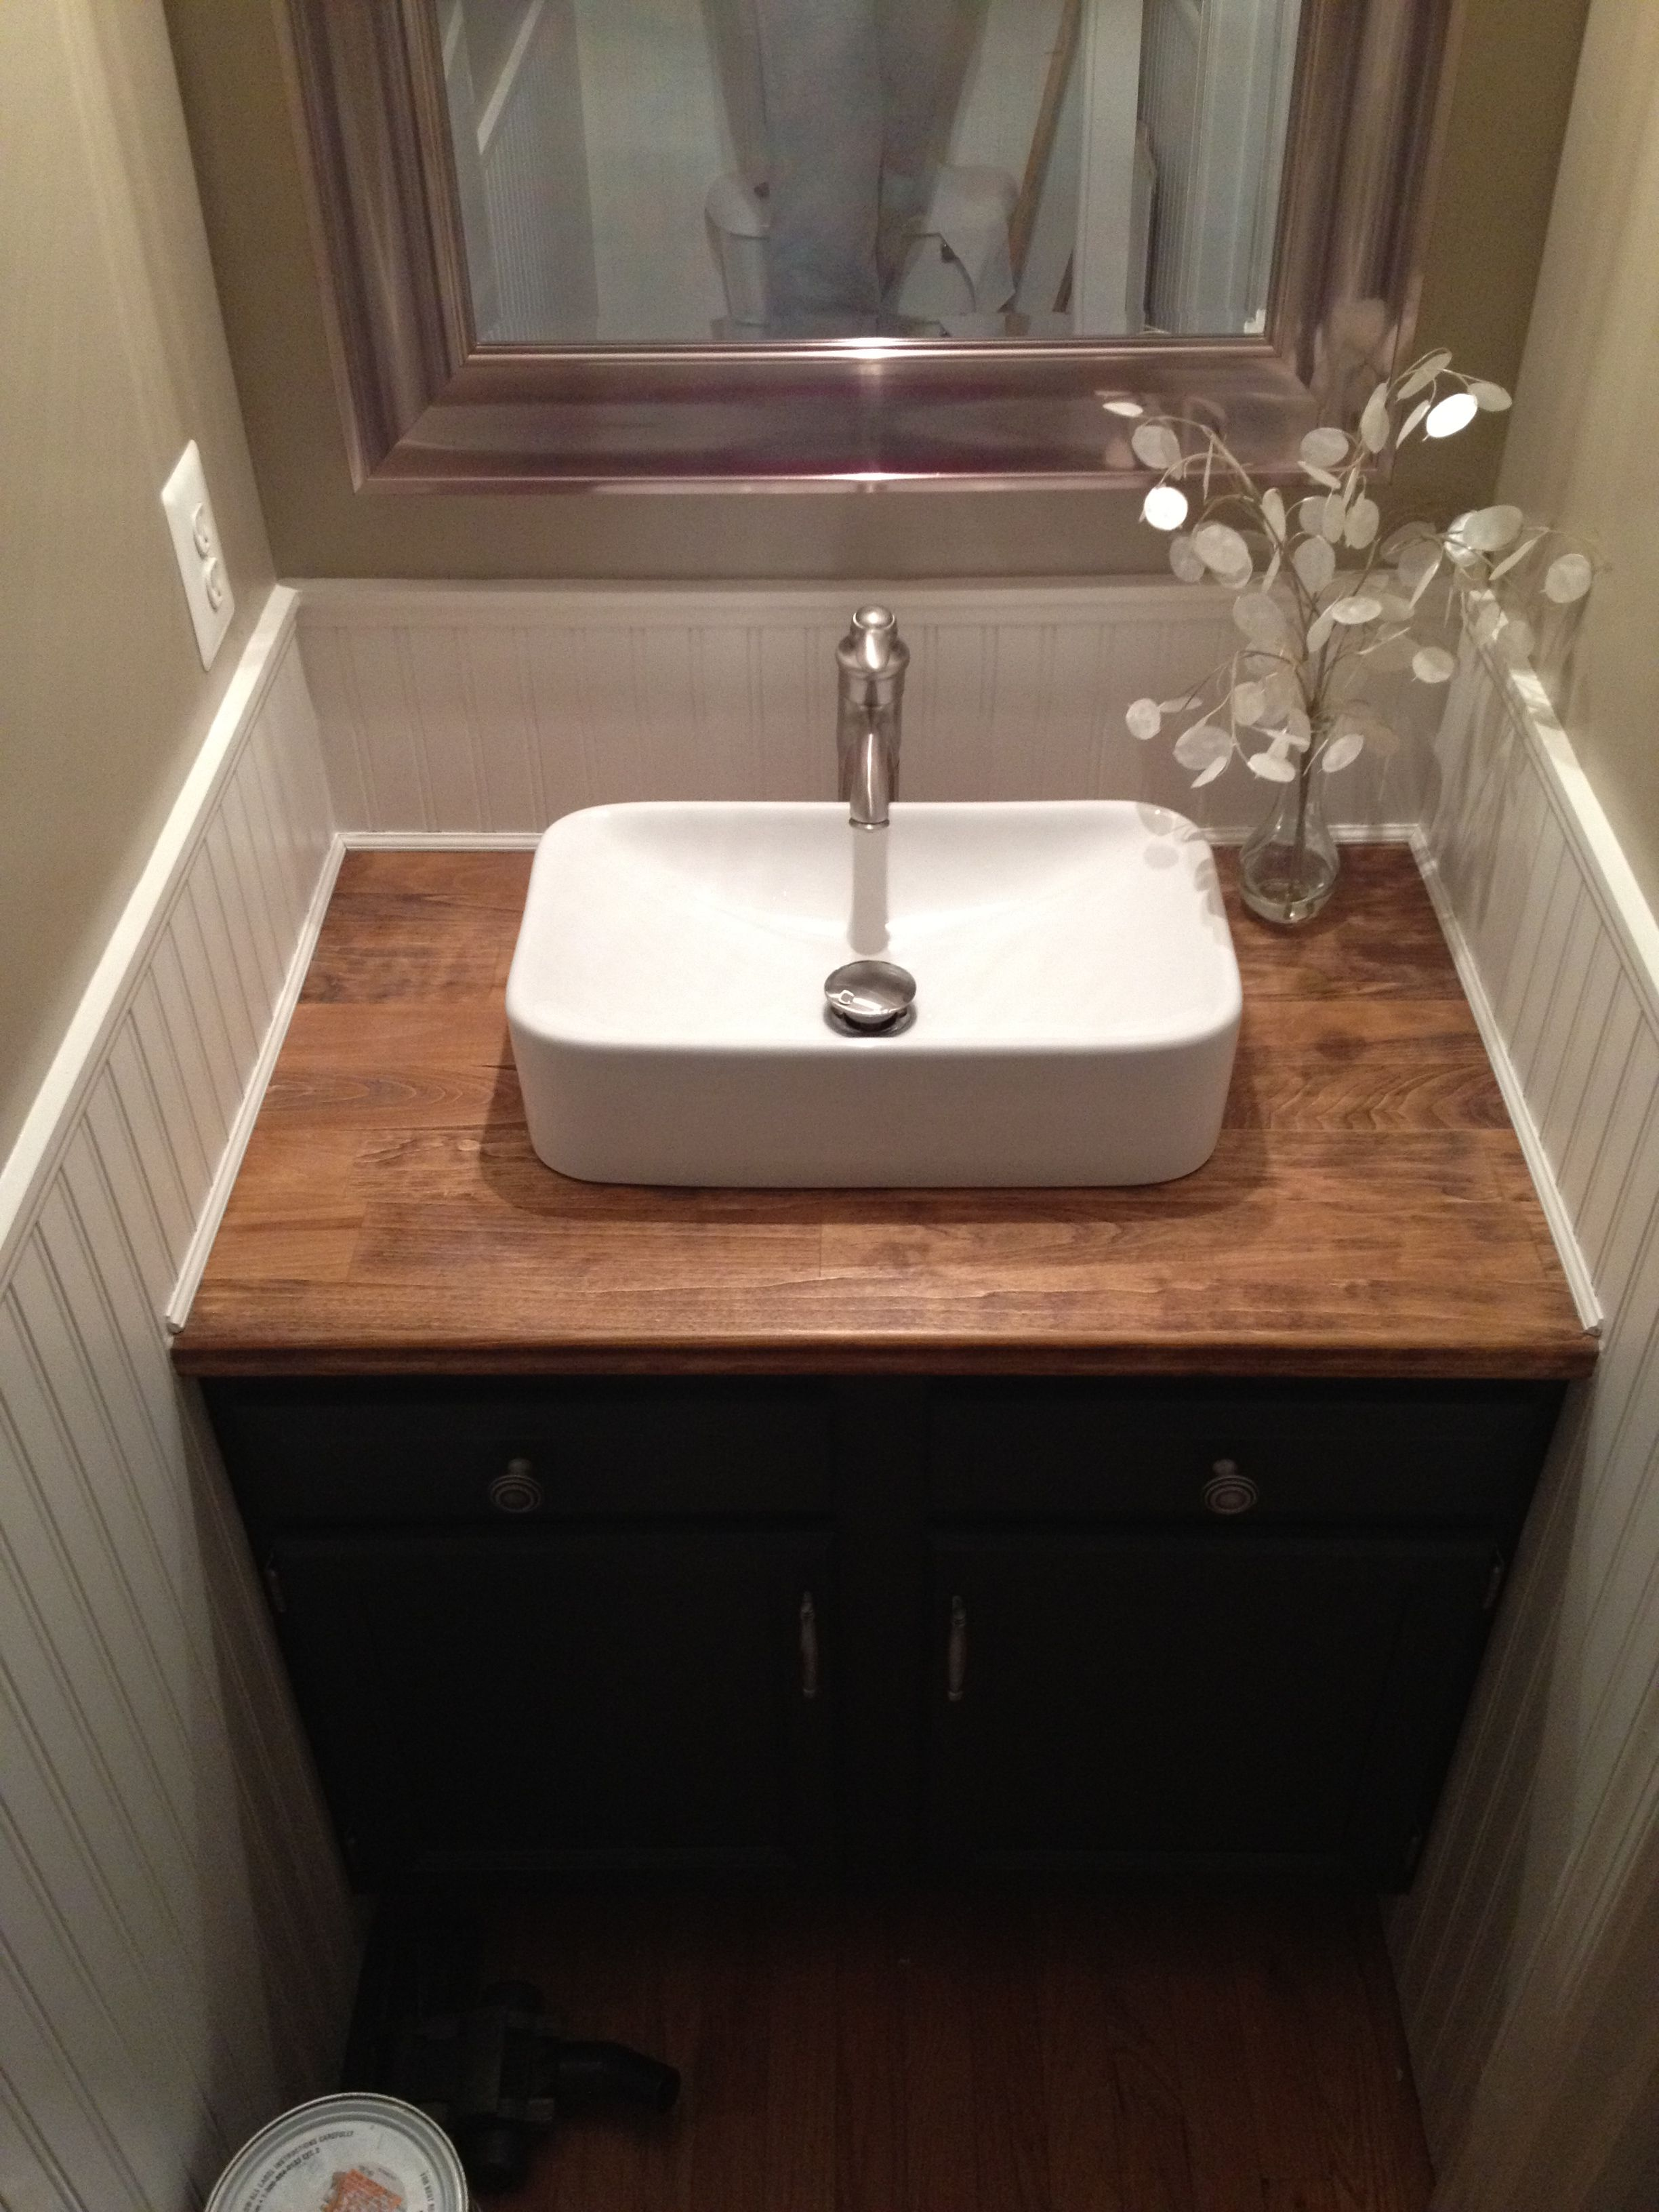 My Talented Husband Renovated Out Upstairs Half- Bath In